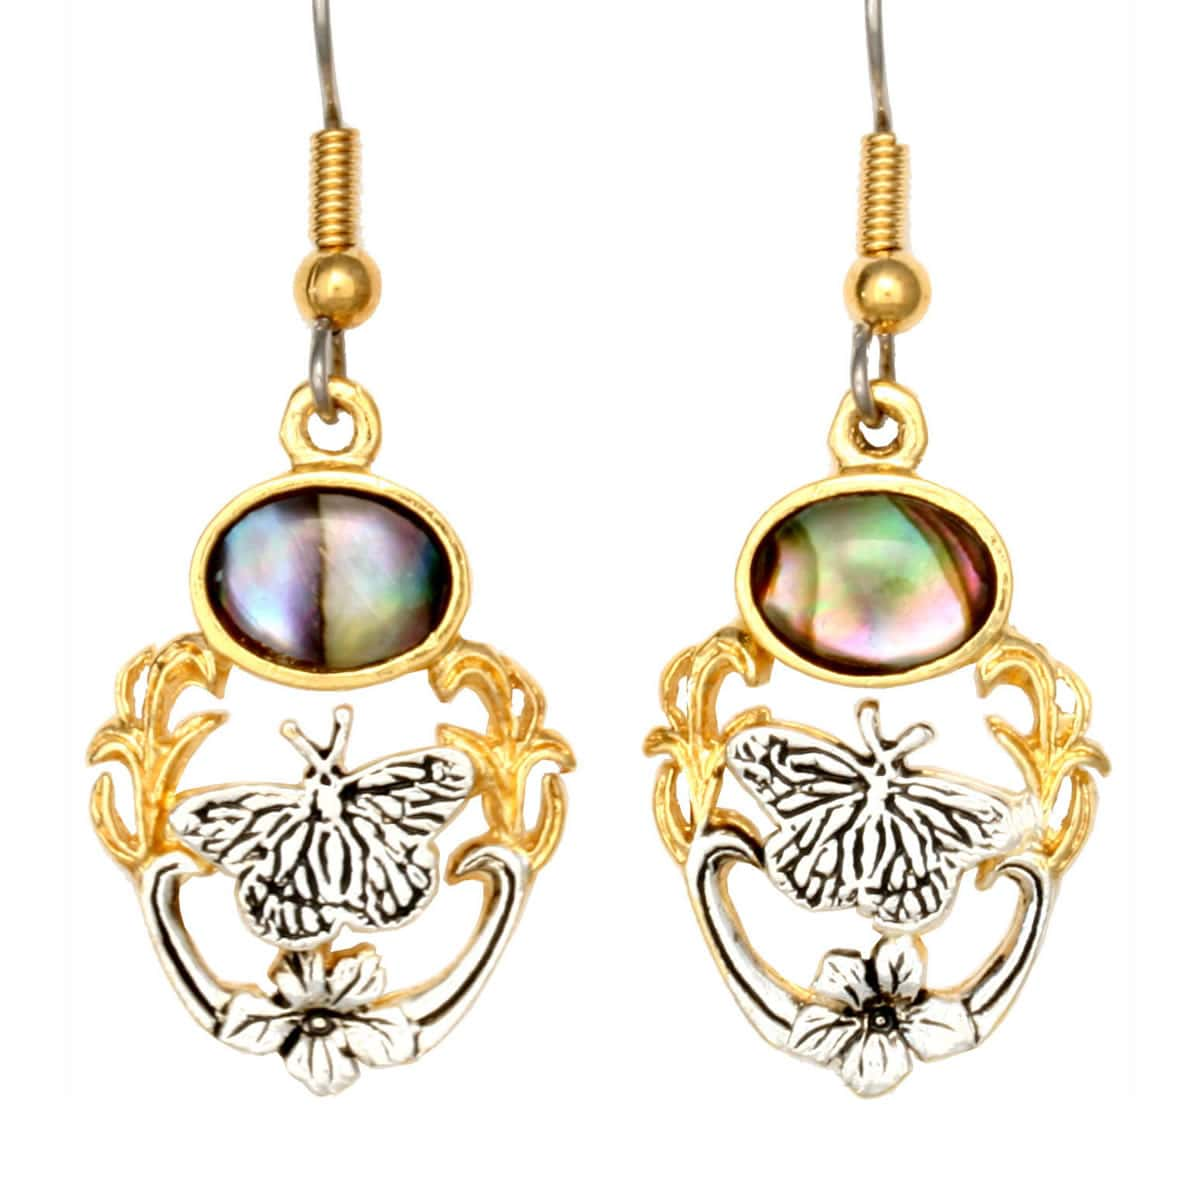 Cut Out Wholesale Butterfly Earrings with Abalone Shell Inlay